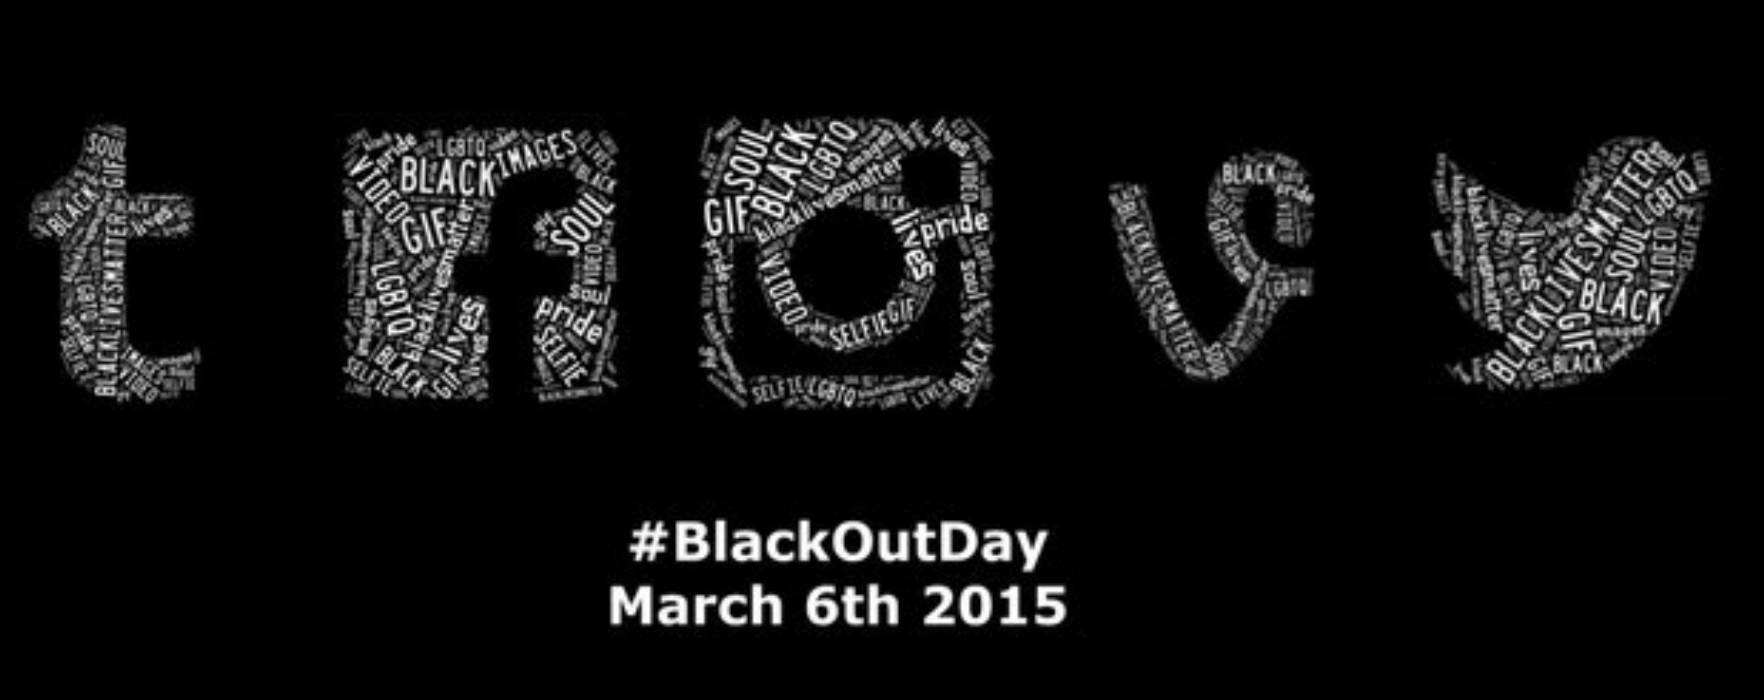 article template - BlackOut Day image